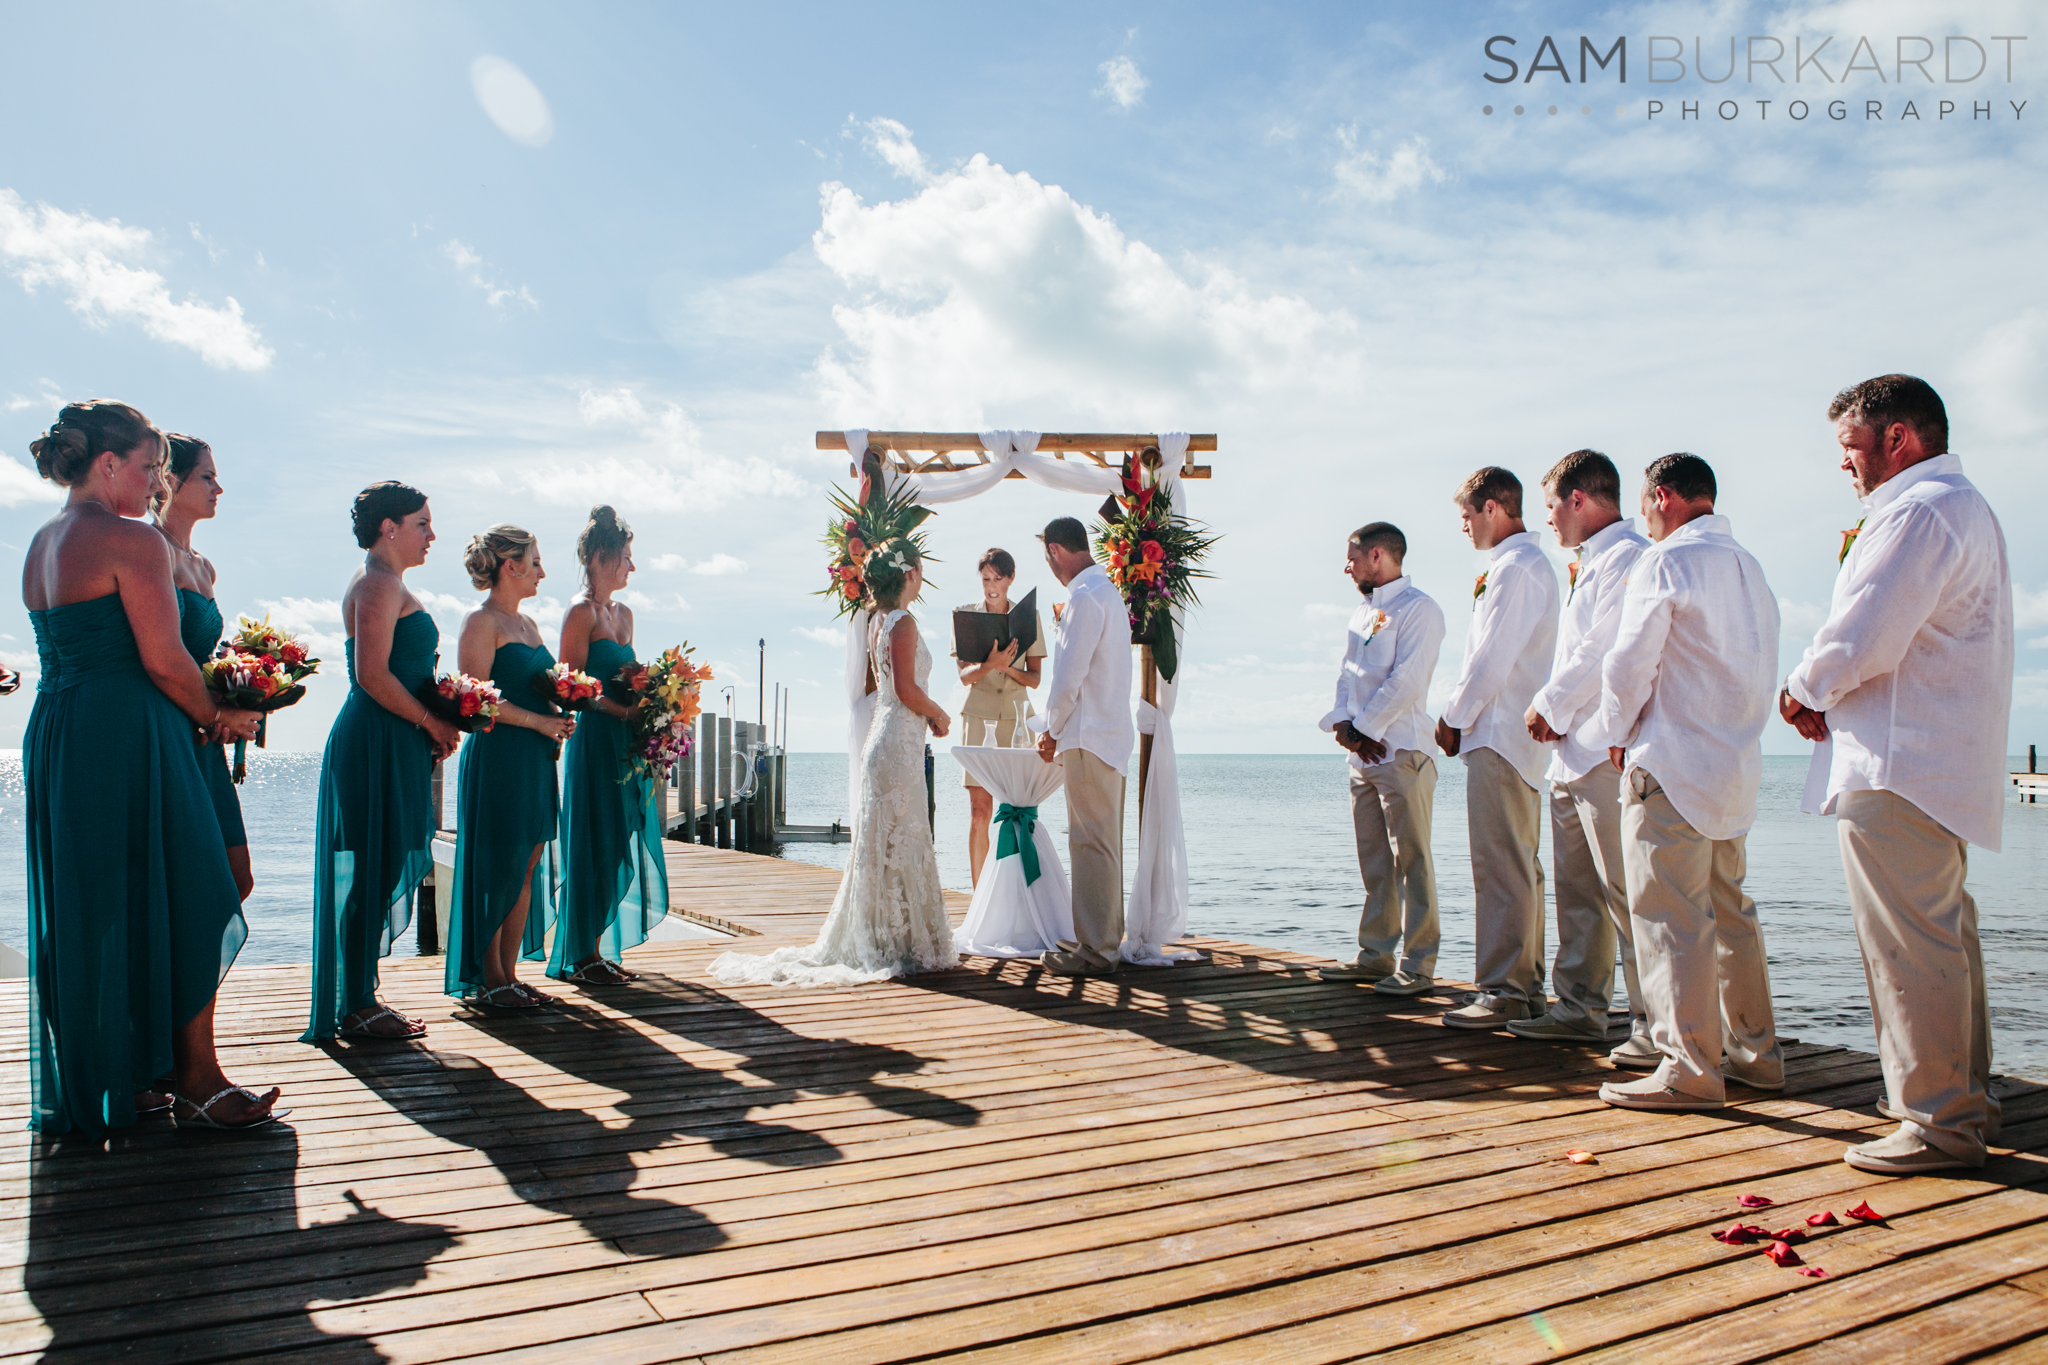 samburkardt_key_west_wedding_marathon_florida_summer_beach_ocean_front_0032.jpg